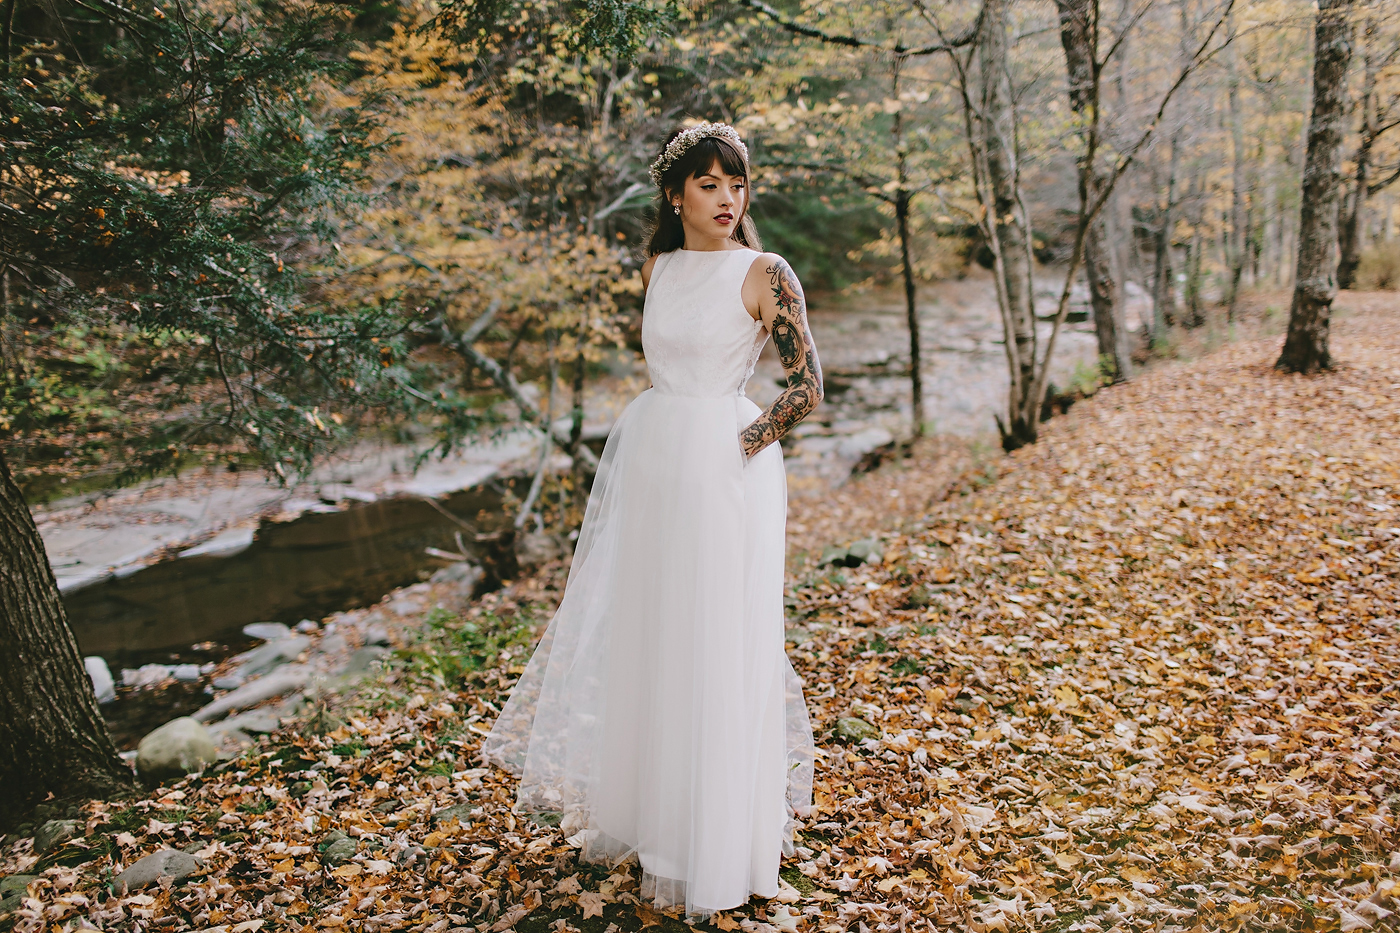 Bride in dress standing in leaves in upstate New York